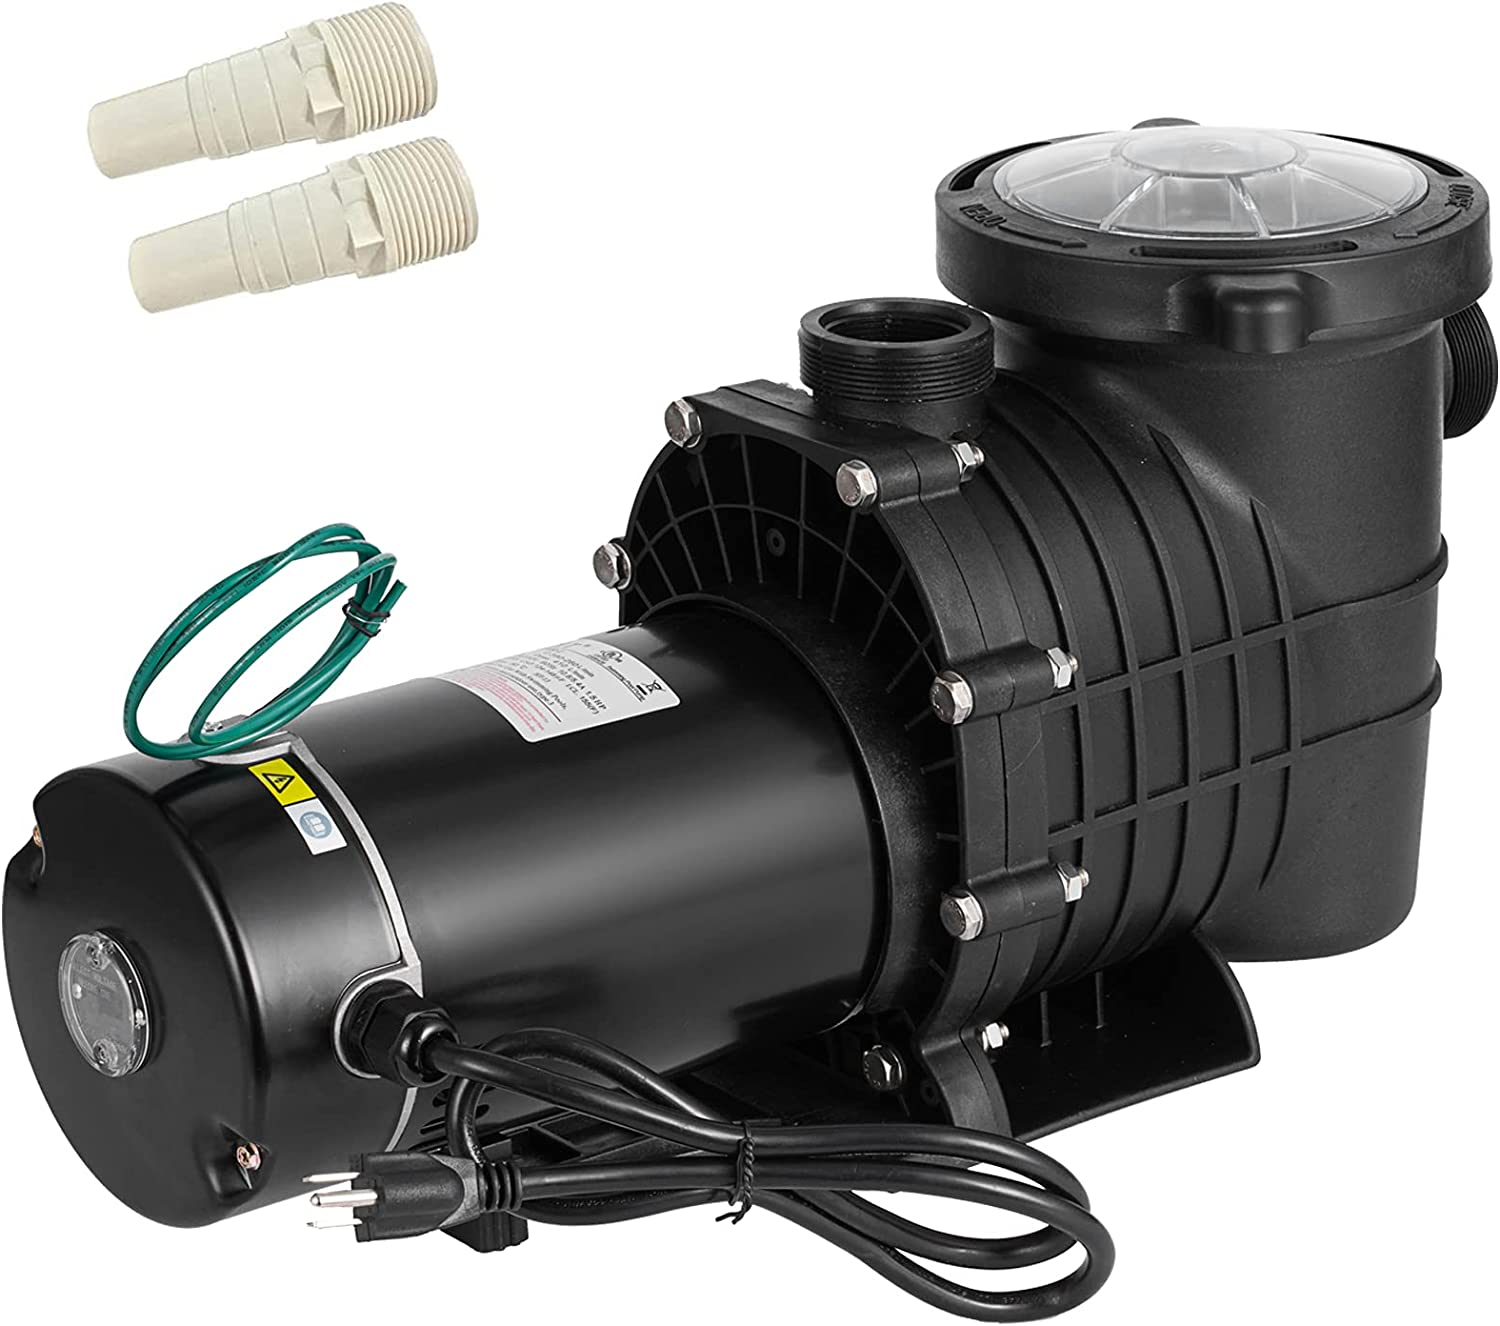 PRIBCHO 1.5 HP Pool Pump Inground High Flow Pool Pump Above Ground Single Speed Swimming Pool Pumps with Strainer Basket 110/220V Dual Voltage W/ 2Pcs 1-1/2NPT Connectors